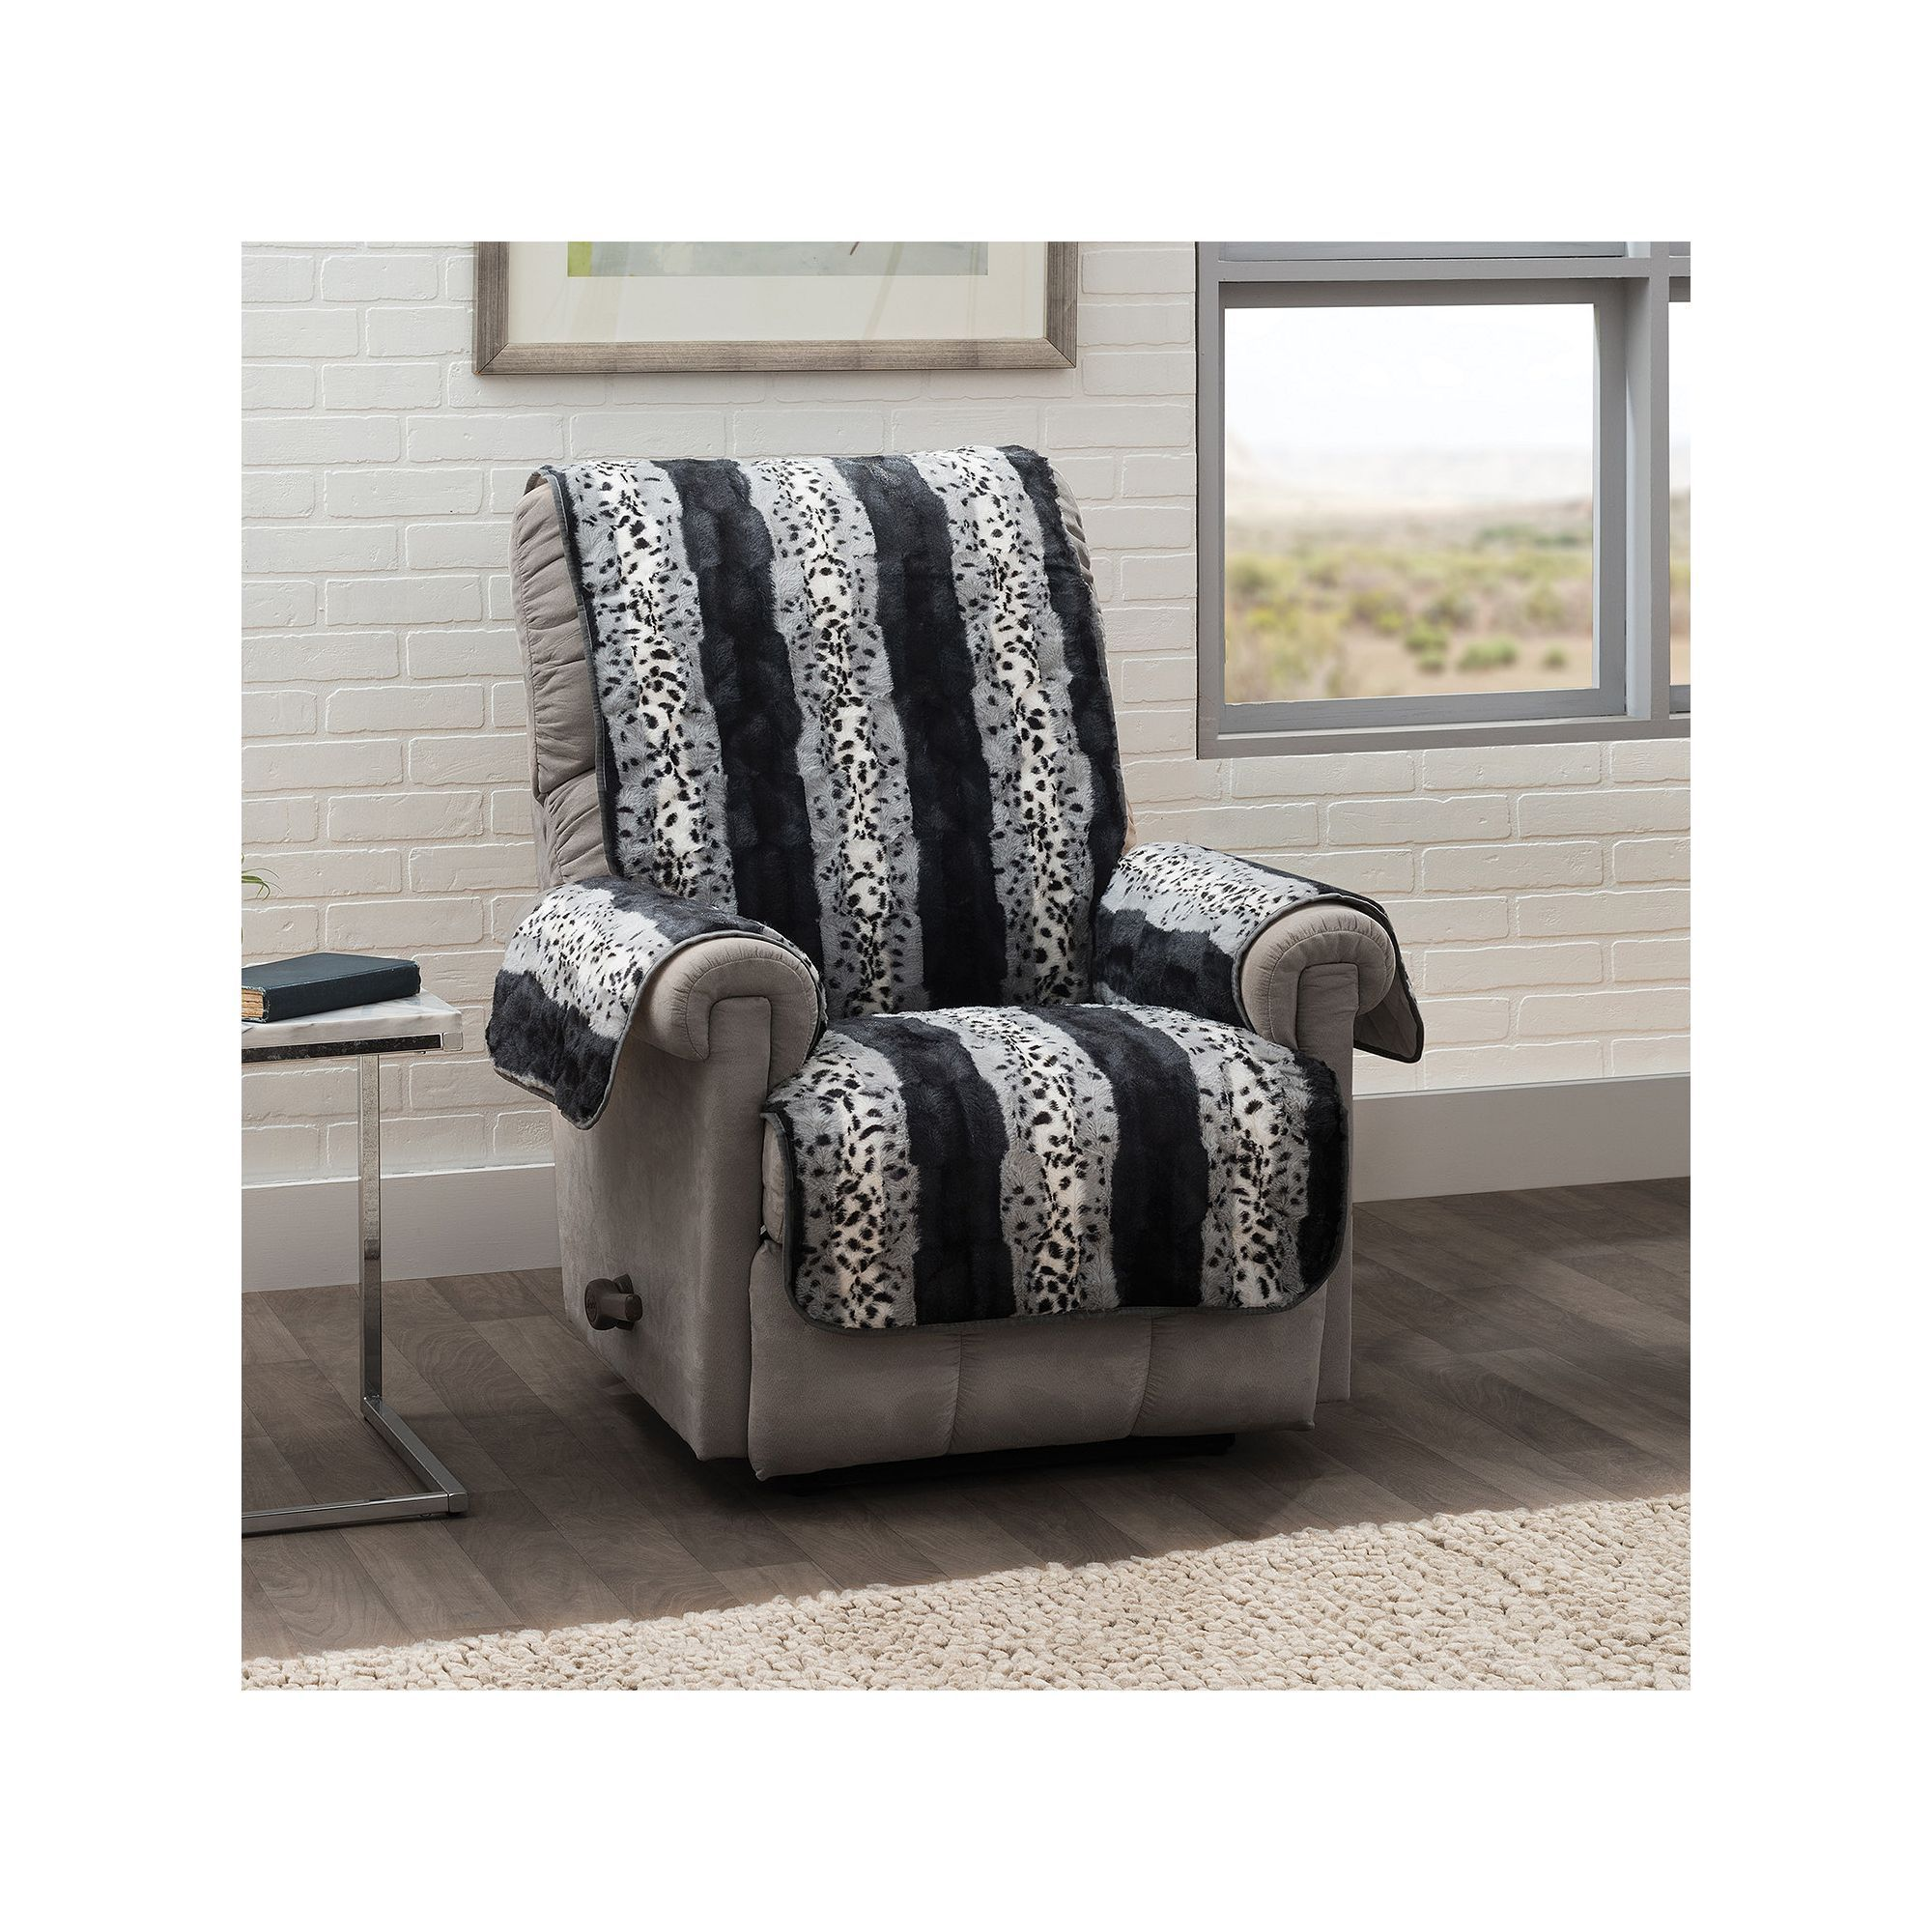 for sofas slipcover slipcovers magnificent furniture inside recliners slip custom couch covers diy